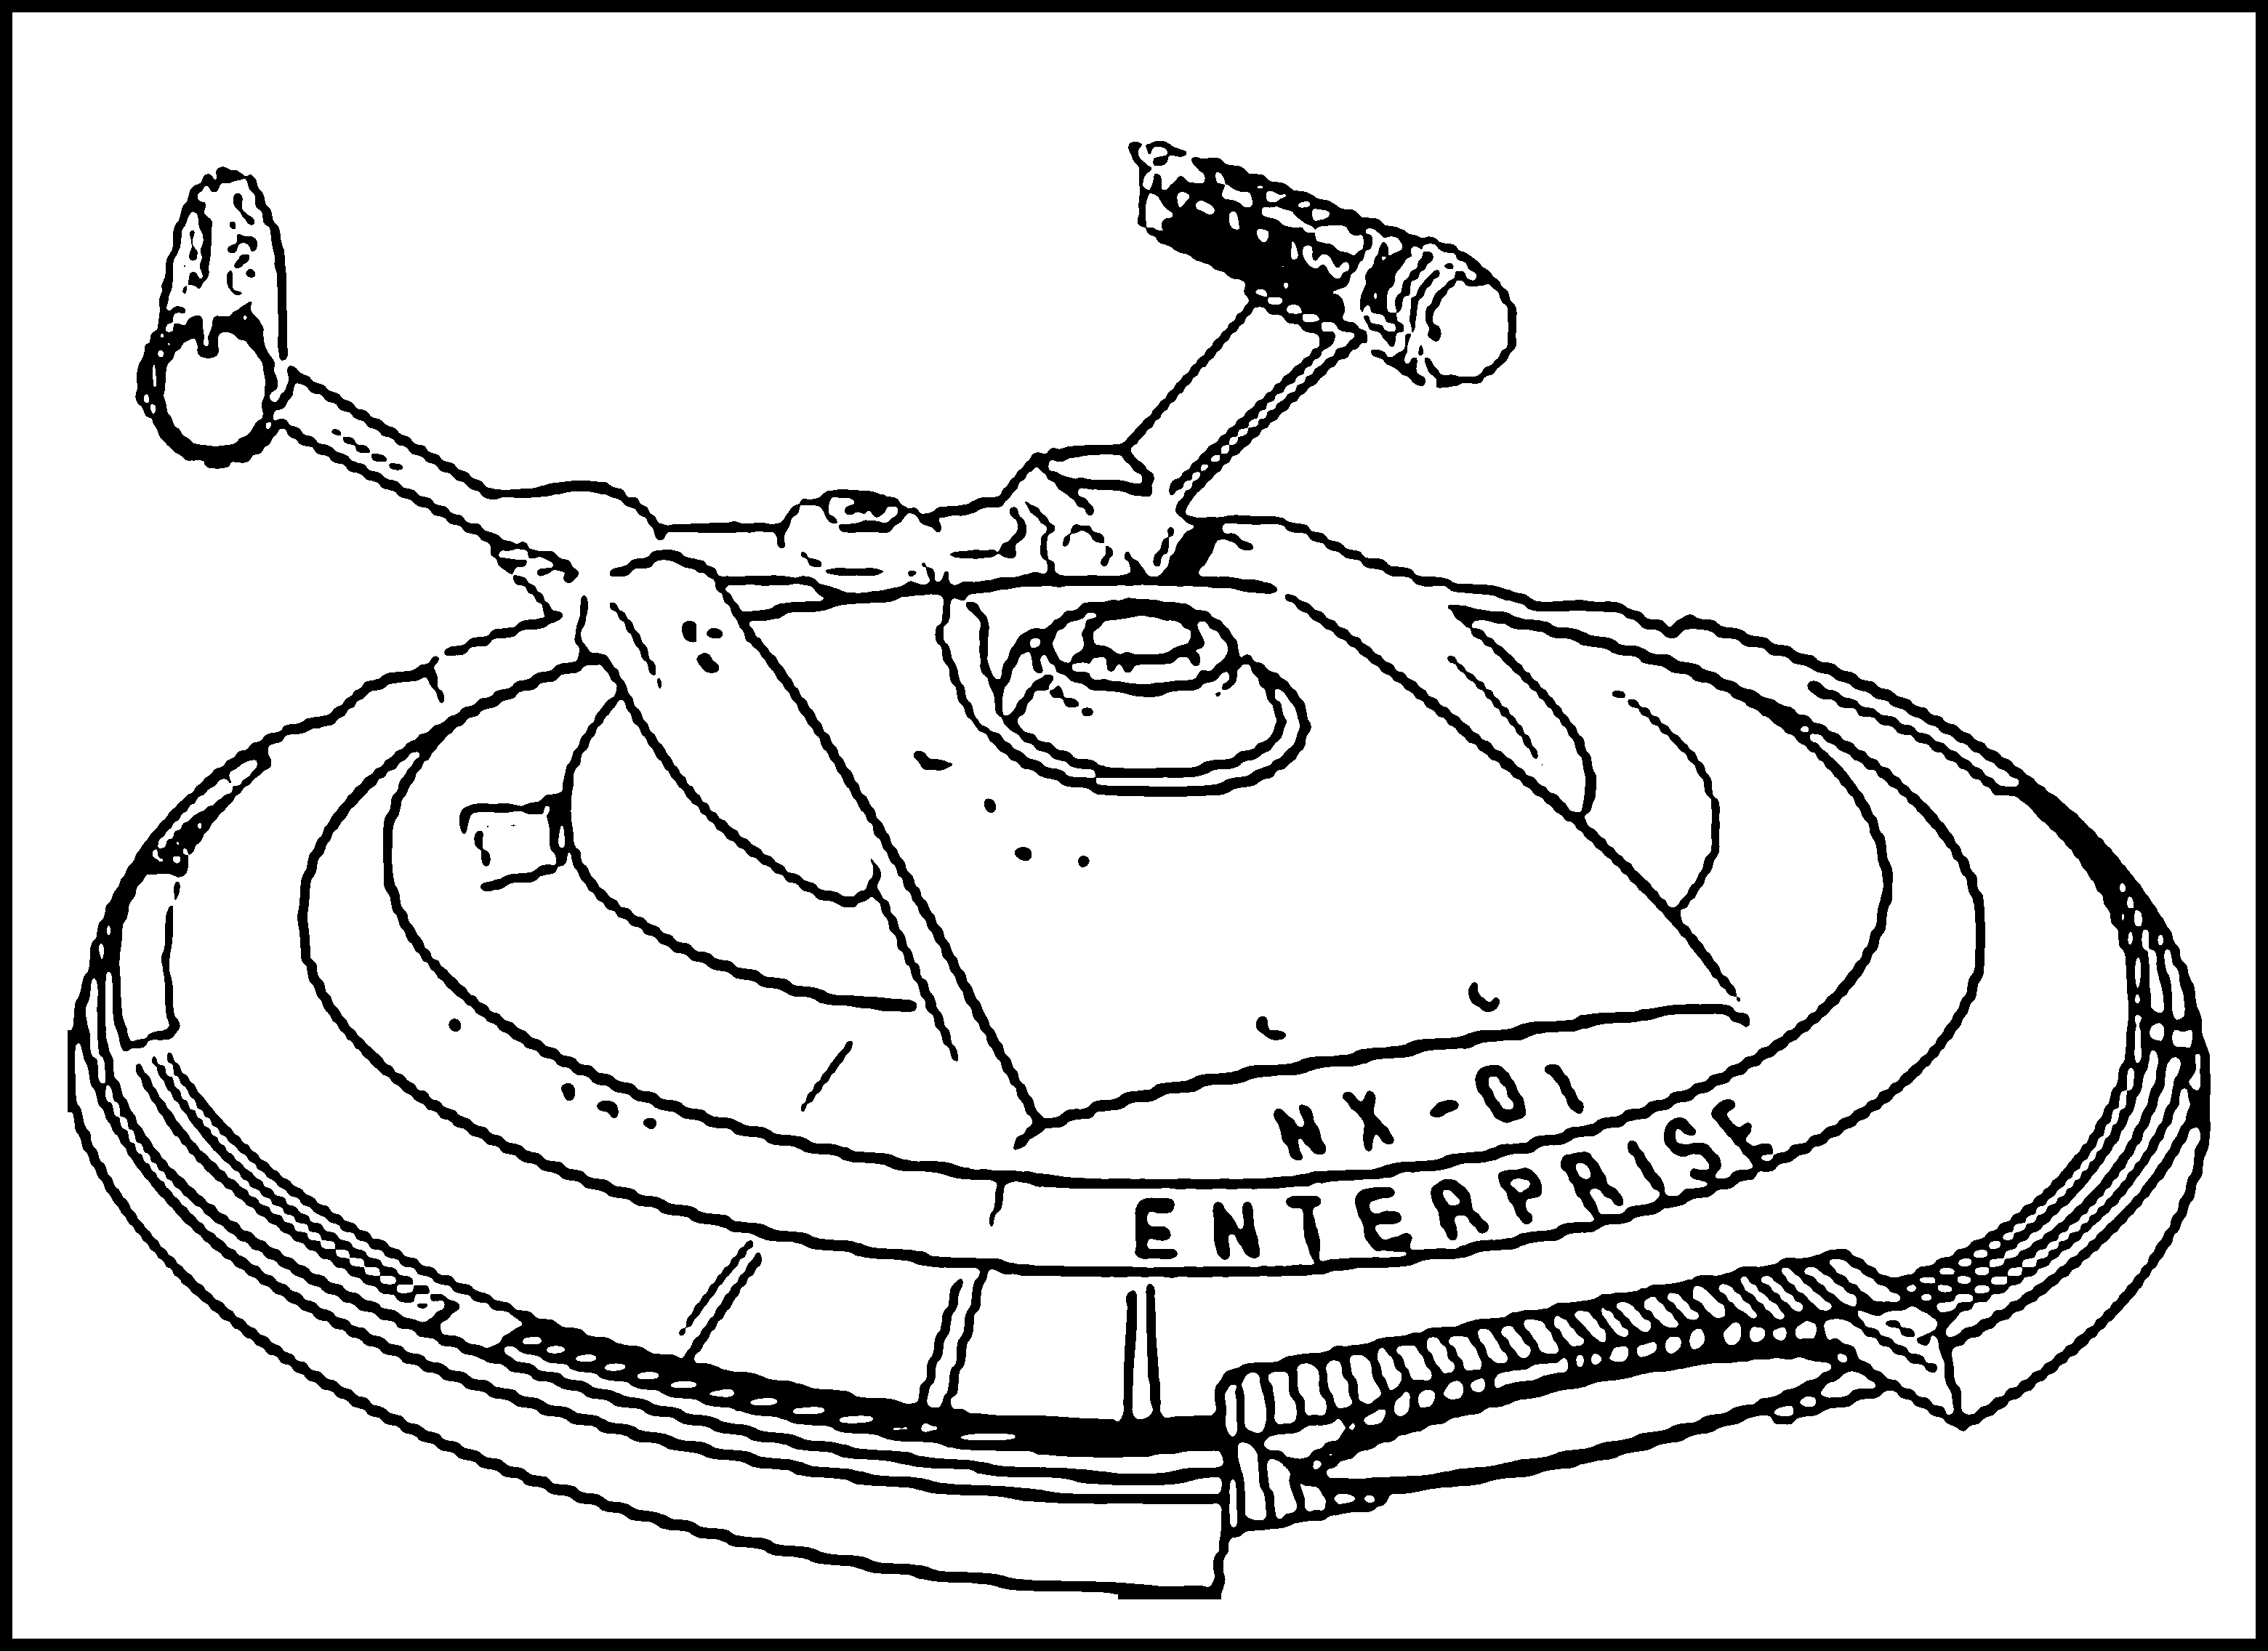 3120x2271 Fresh Spaceships Coloring Pages Collection Printable Coloring Sheet